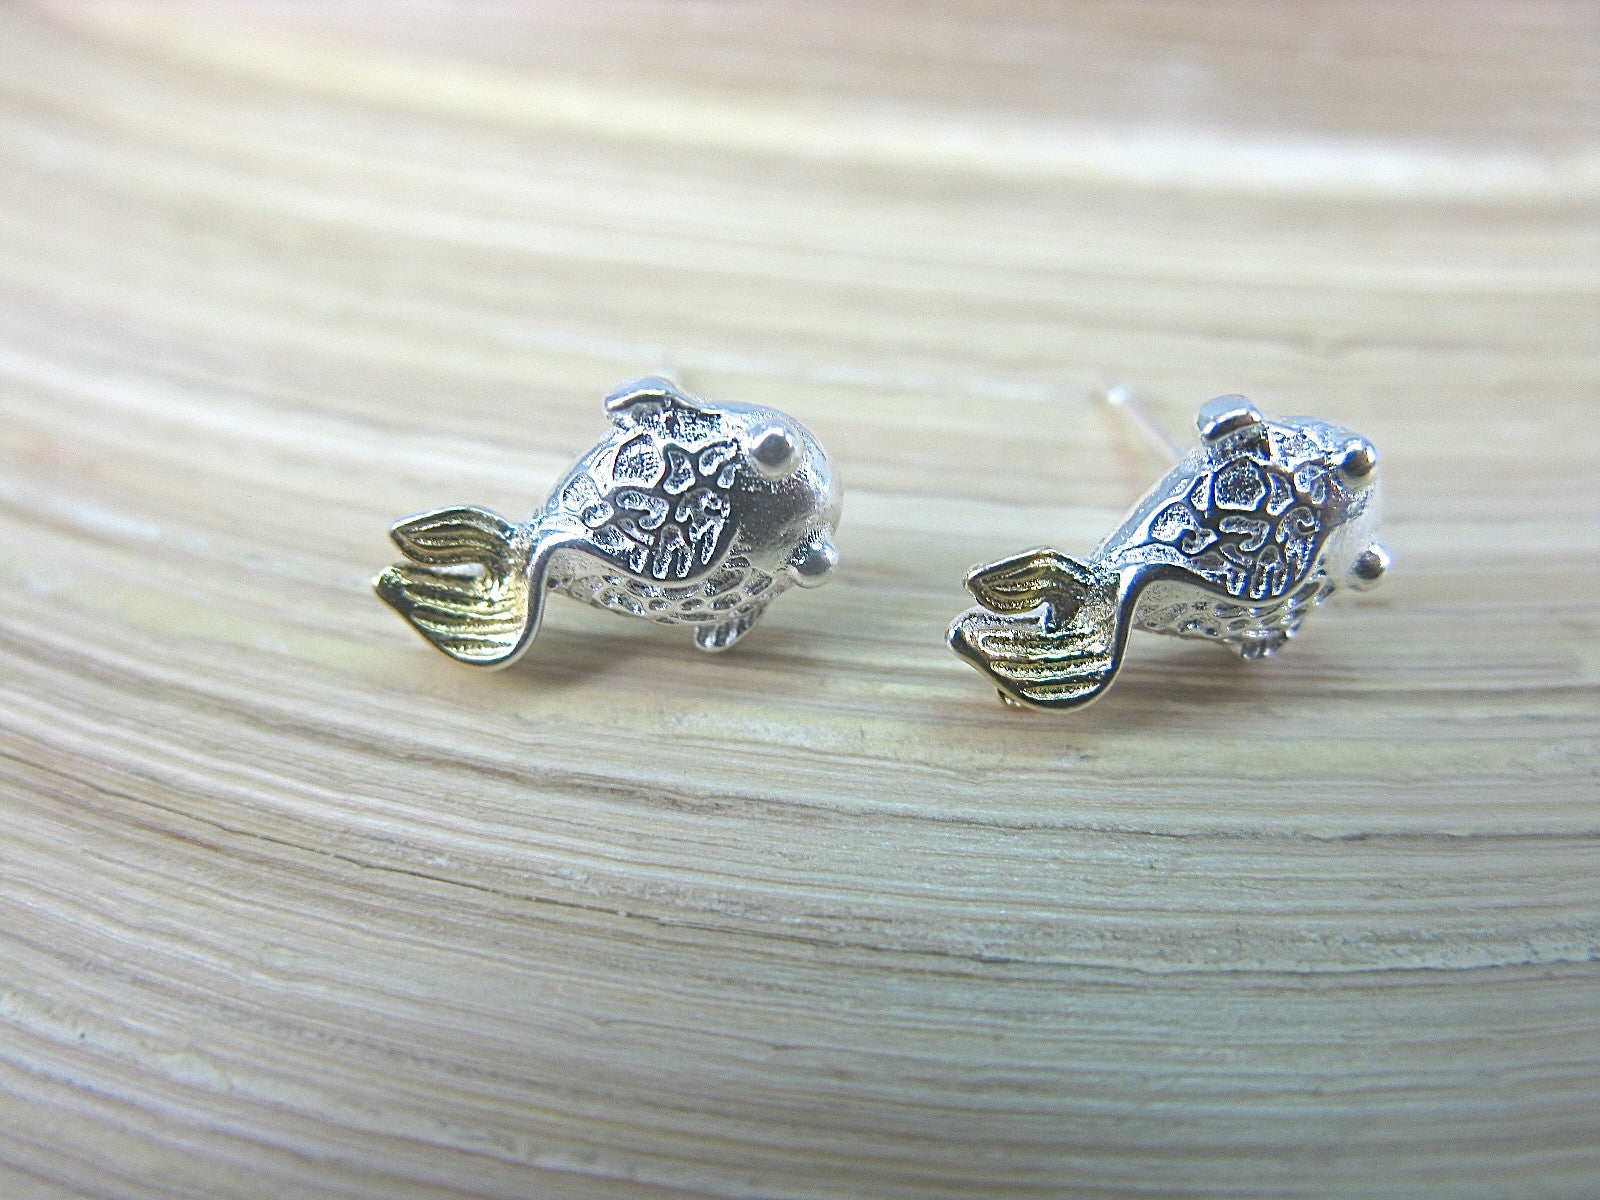 Goldfish Stud Earrings in 925 Sterling Silver Stud Faith Owl - Faith Owl